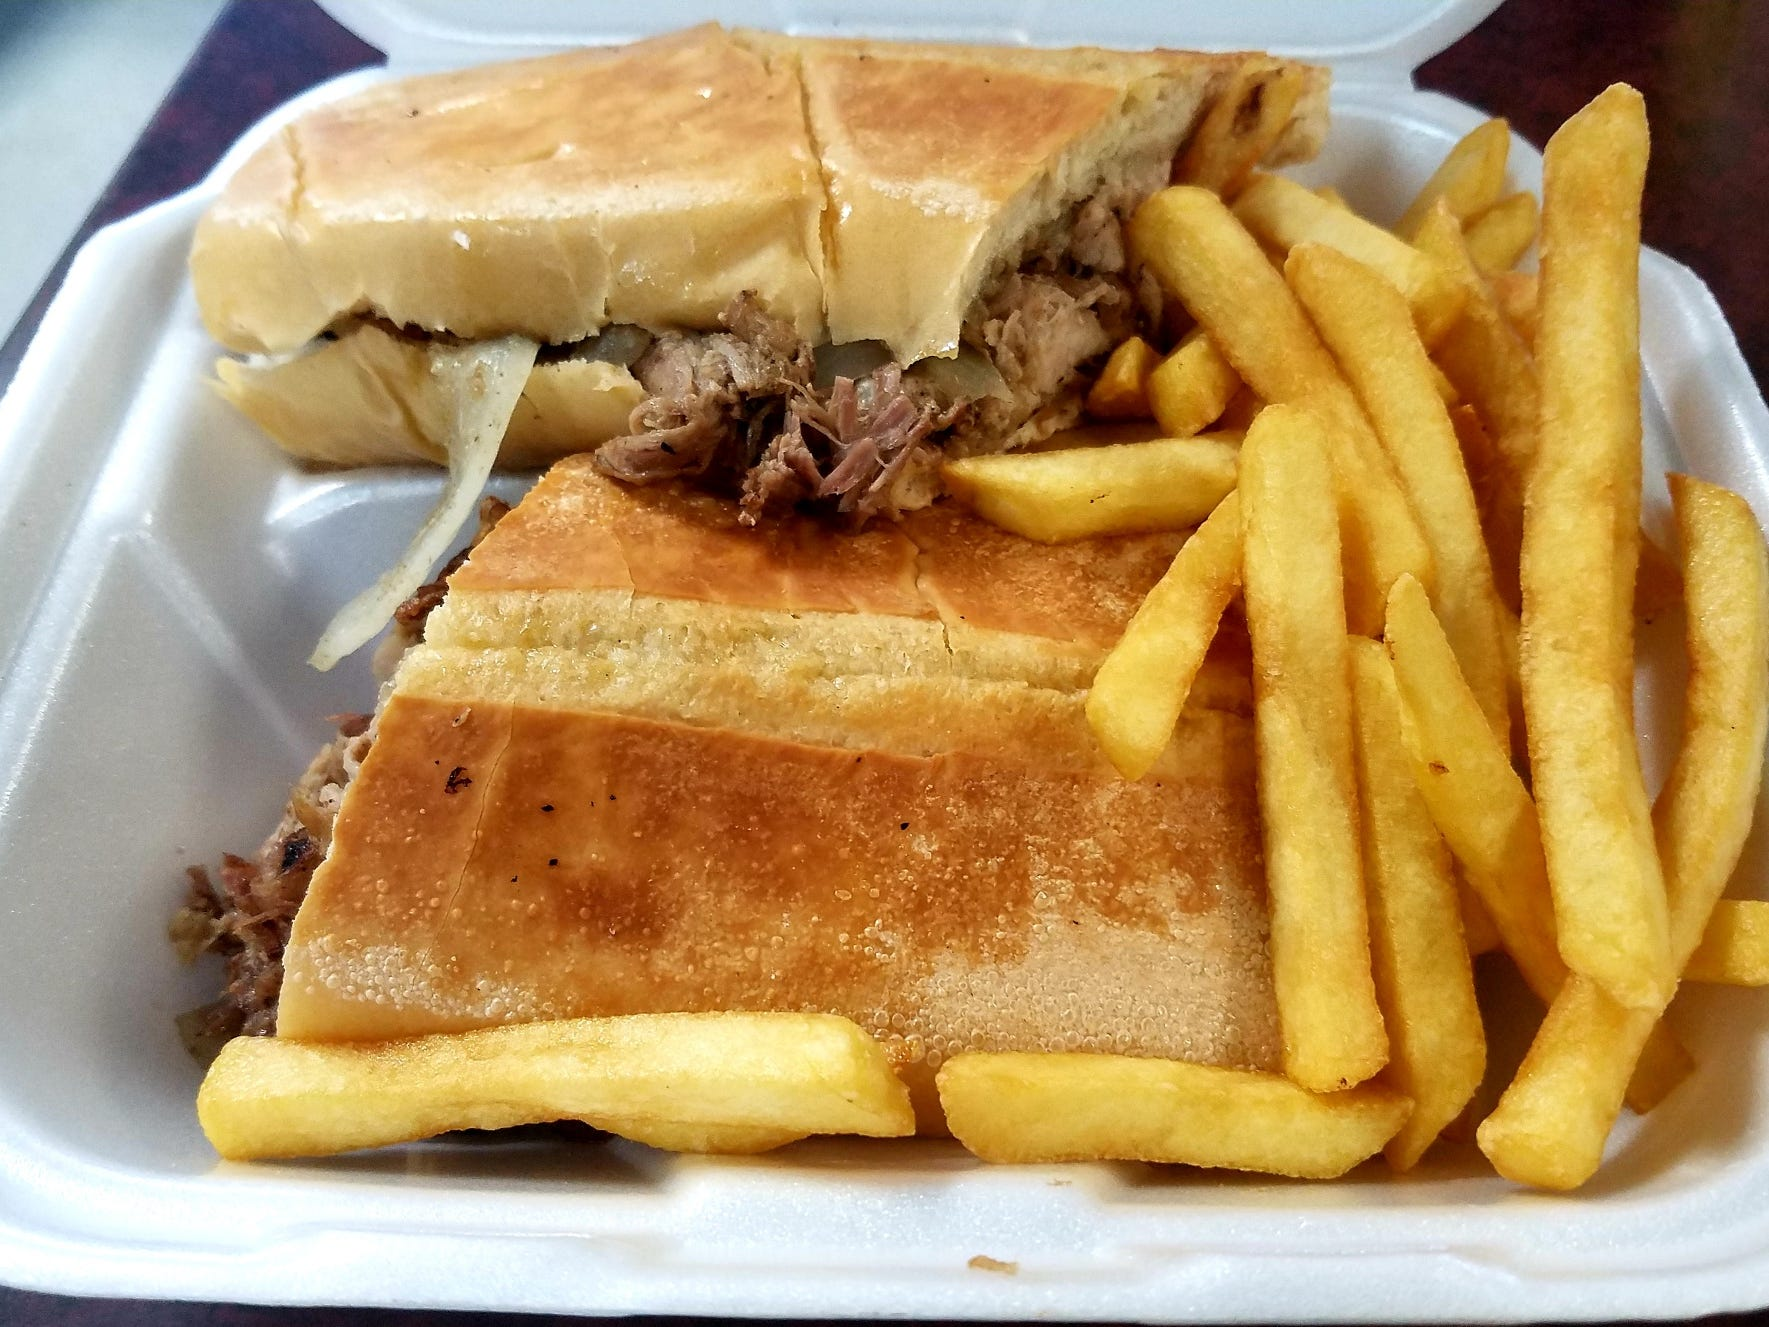 Quetzel's Bread with Pork was pressed Cuban bread loaded with close to a pound of shredded pork. It was served with fries.